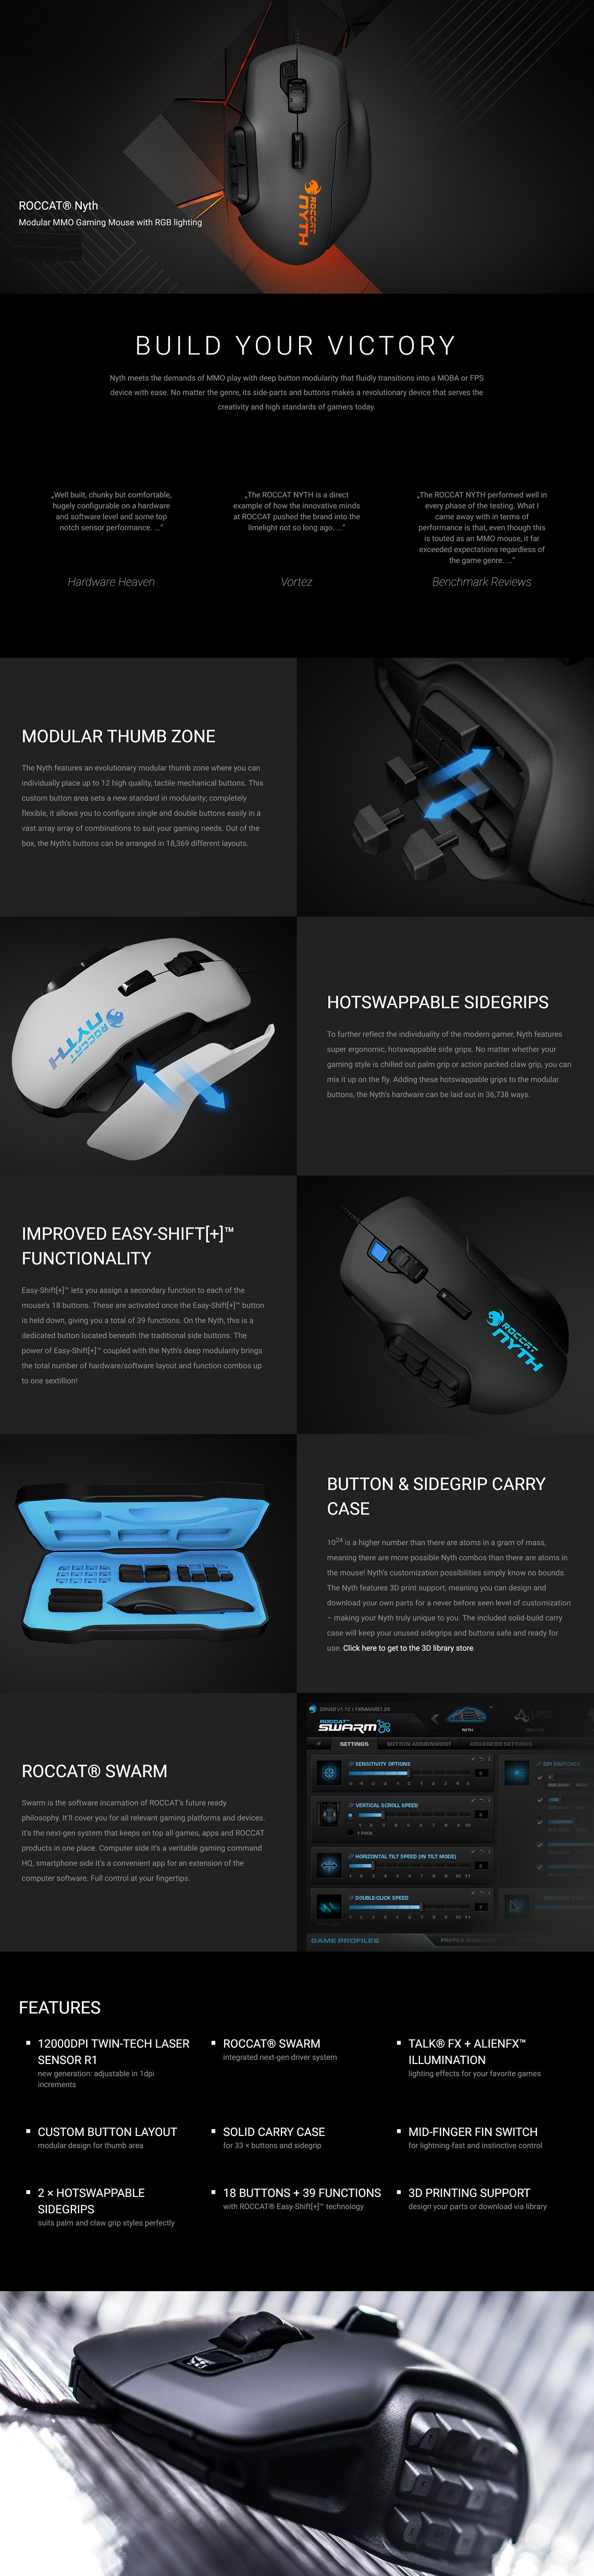 Roccat Nyth Modular MMO Gaming Mouse with RGB Lighting White 1ms RT 12000DPI